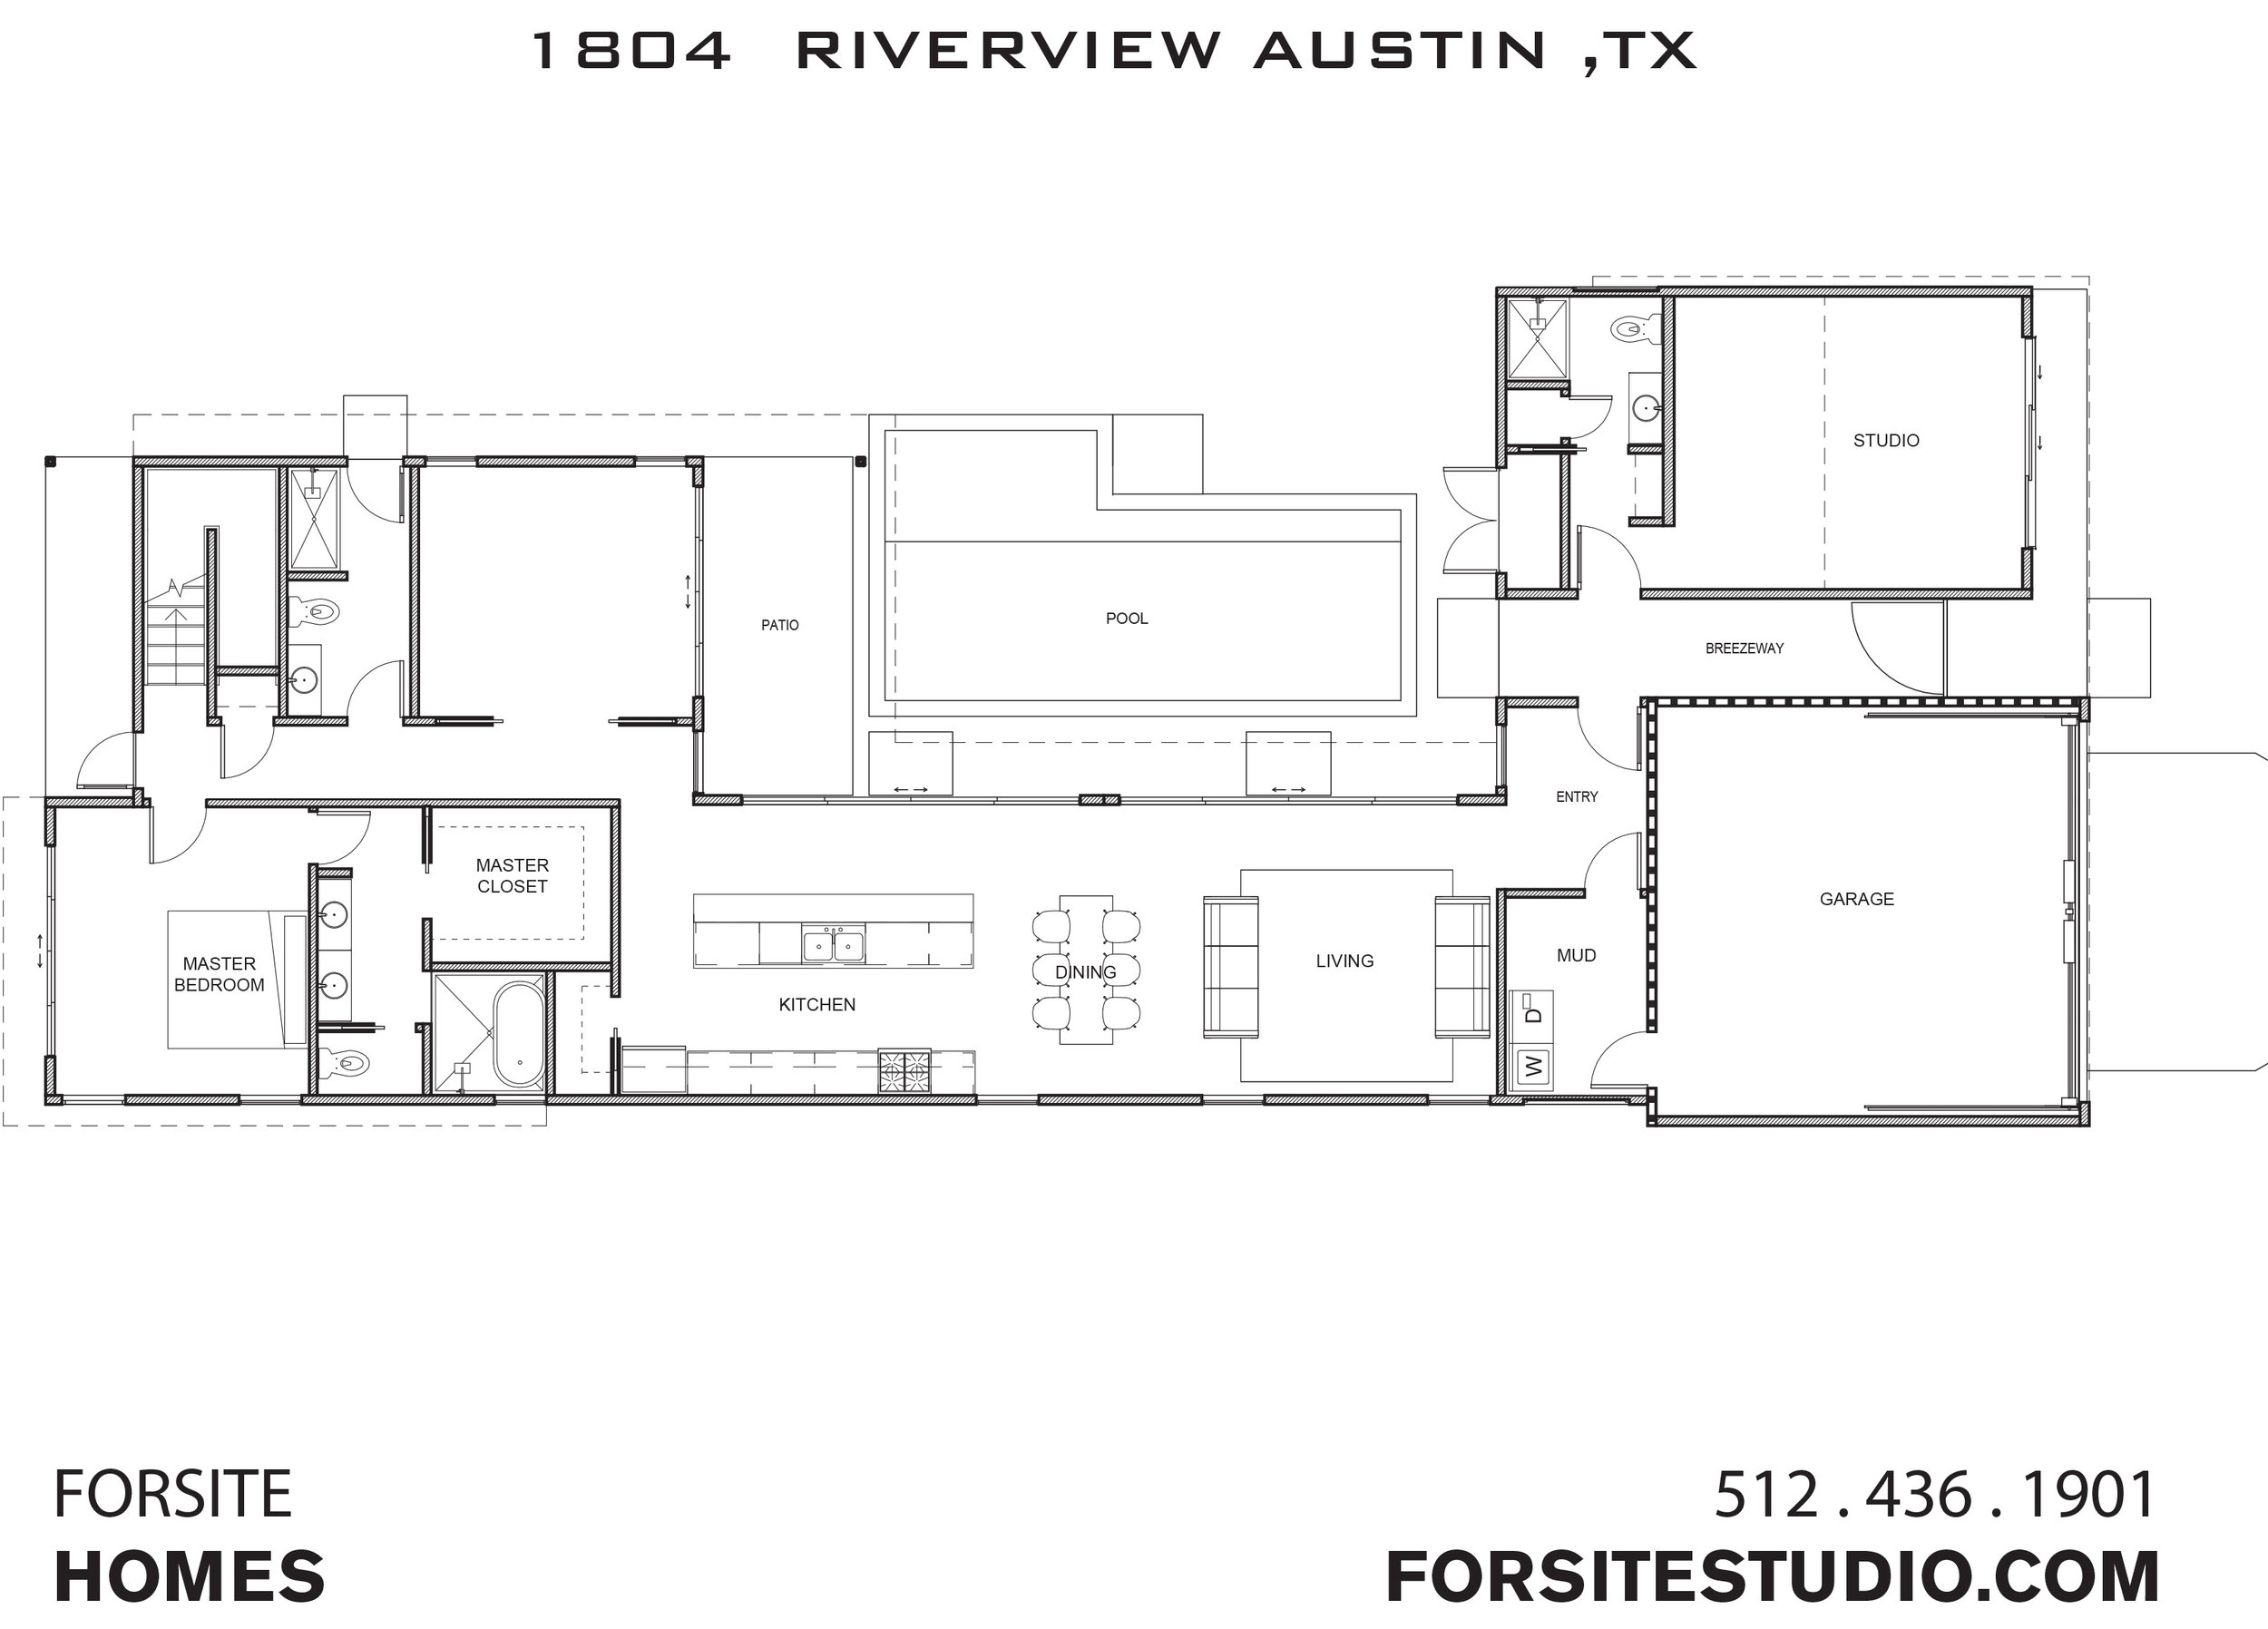 1804_RIVERVIEW_FS_FLOORPLANS